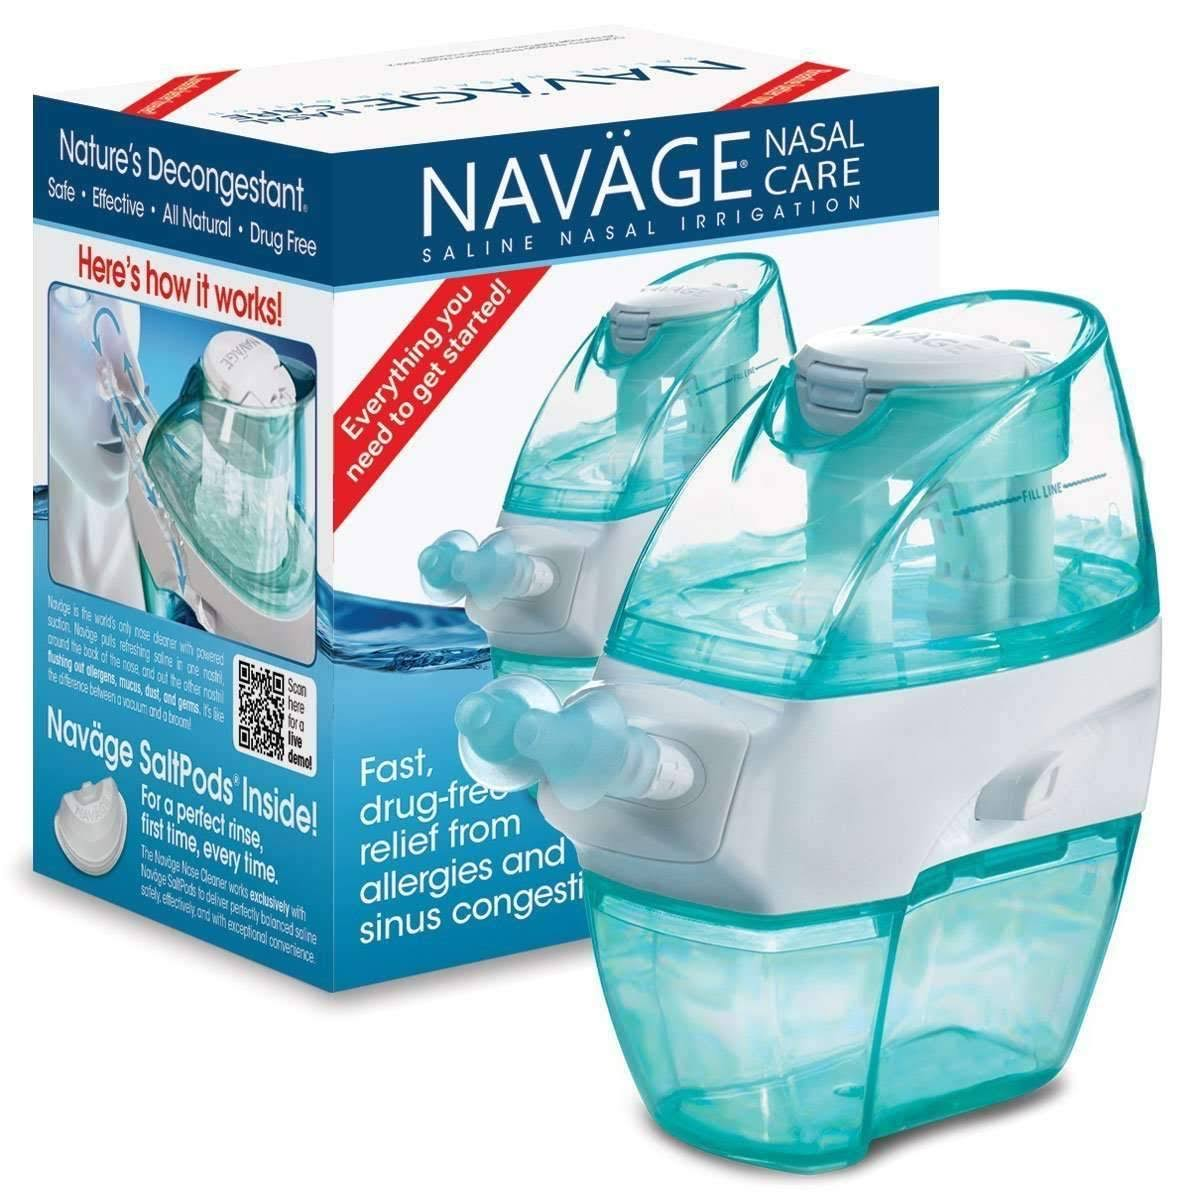 Navage Nasal Irrigation, Saline